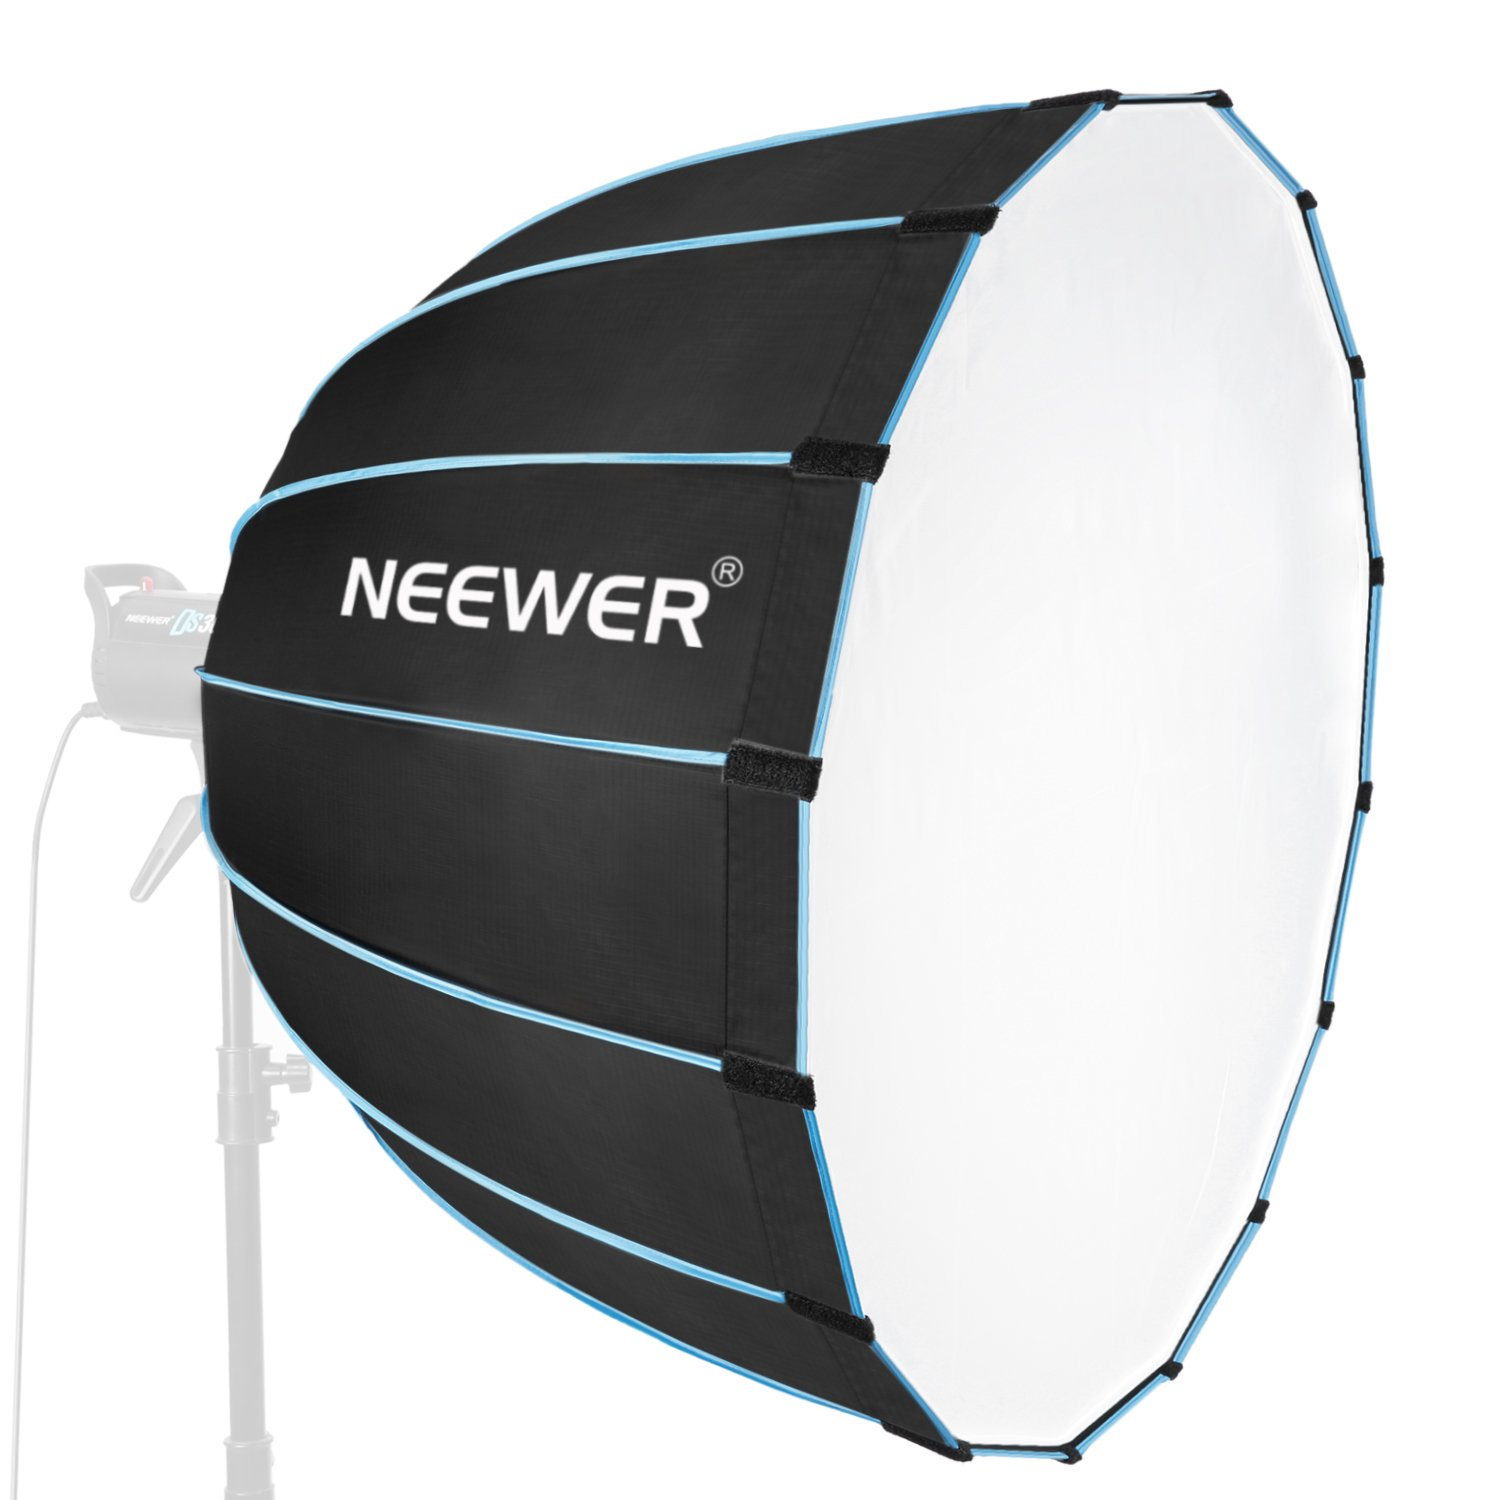 Neewer Hexadecagon Softbox 36 inches/90 Centimeters with...